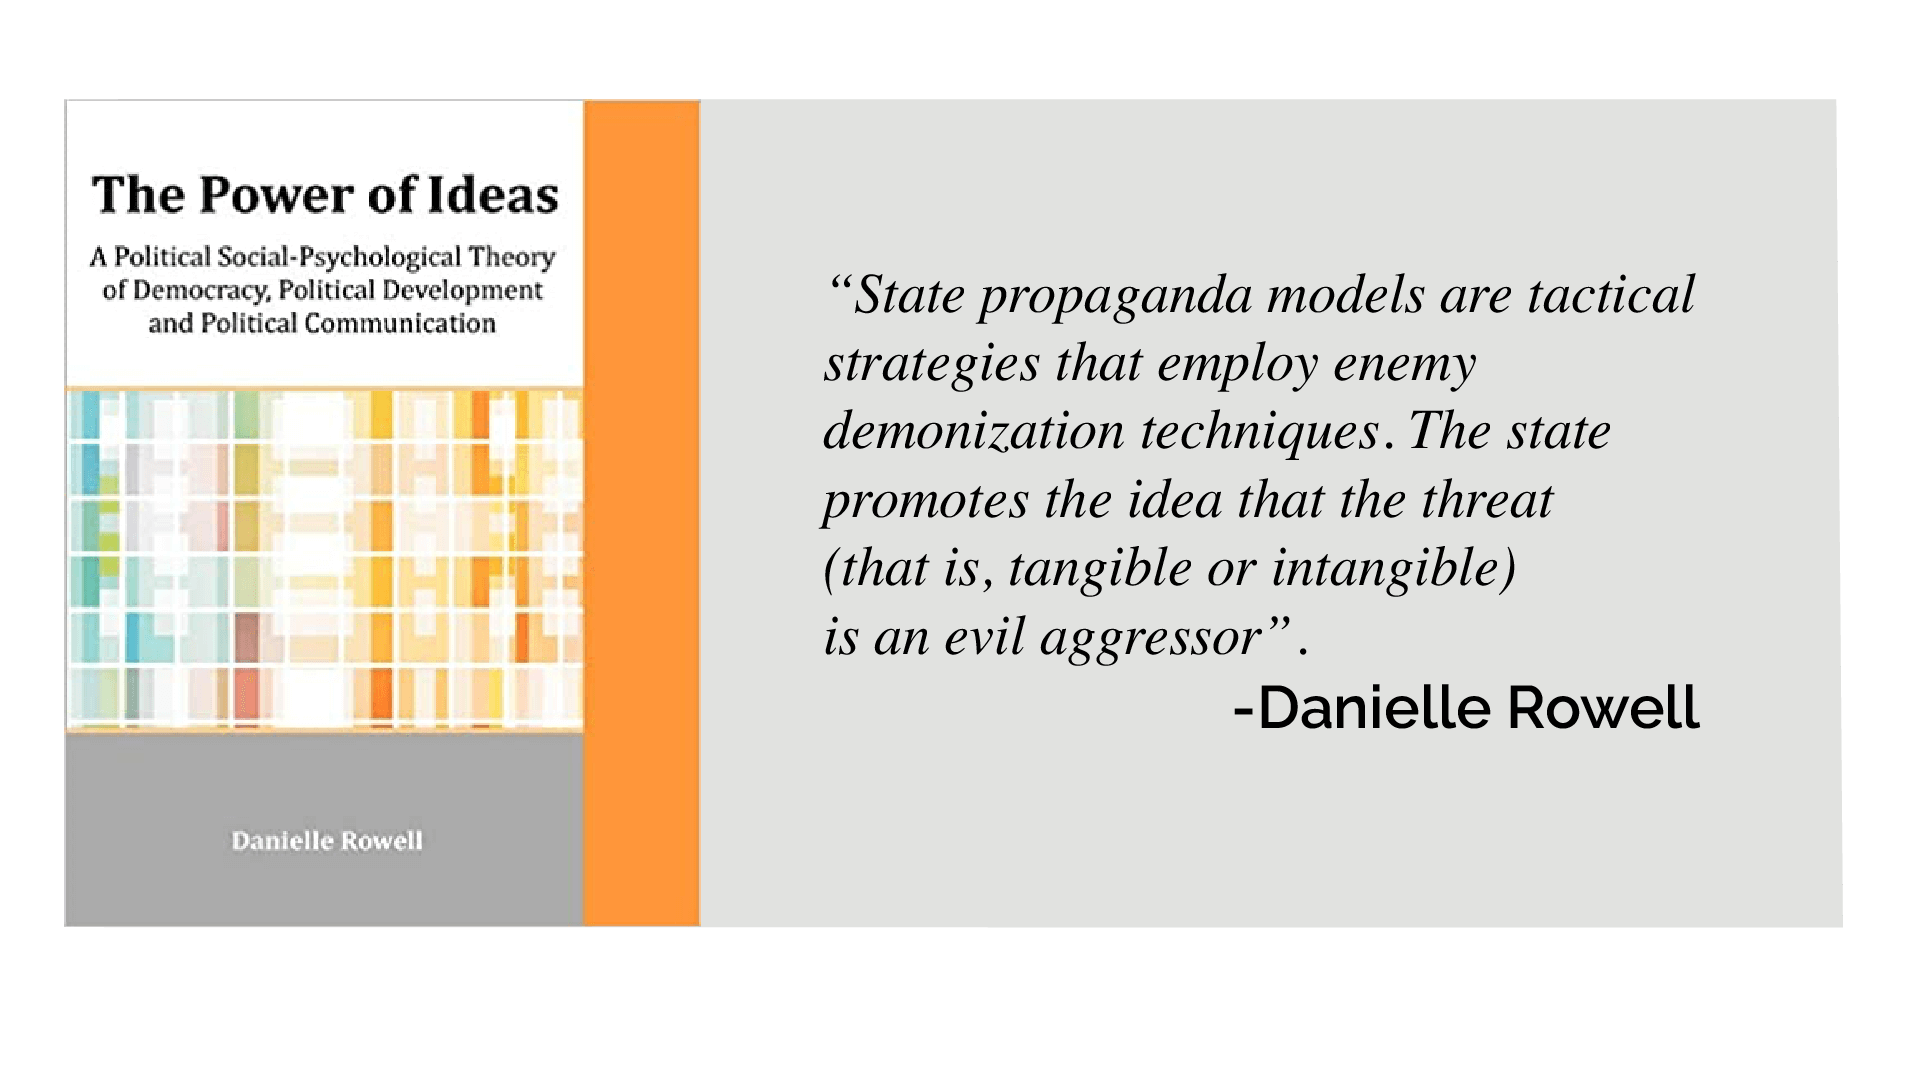 """Image of book cover for The Power of Ideas and quote from Danielle Rowell: As Danielle Rowell put it in The Power of Ideas: A Political Social-Psychological Theory of Democracy, Political Development and Political Communication, """"State propaganda models are tactical strategies that employ enemy demonization techniques. The state promotes the idea that the threat (that is, tangible or intangible) is an evil aggressor""""."""